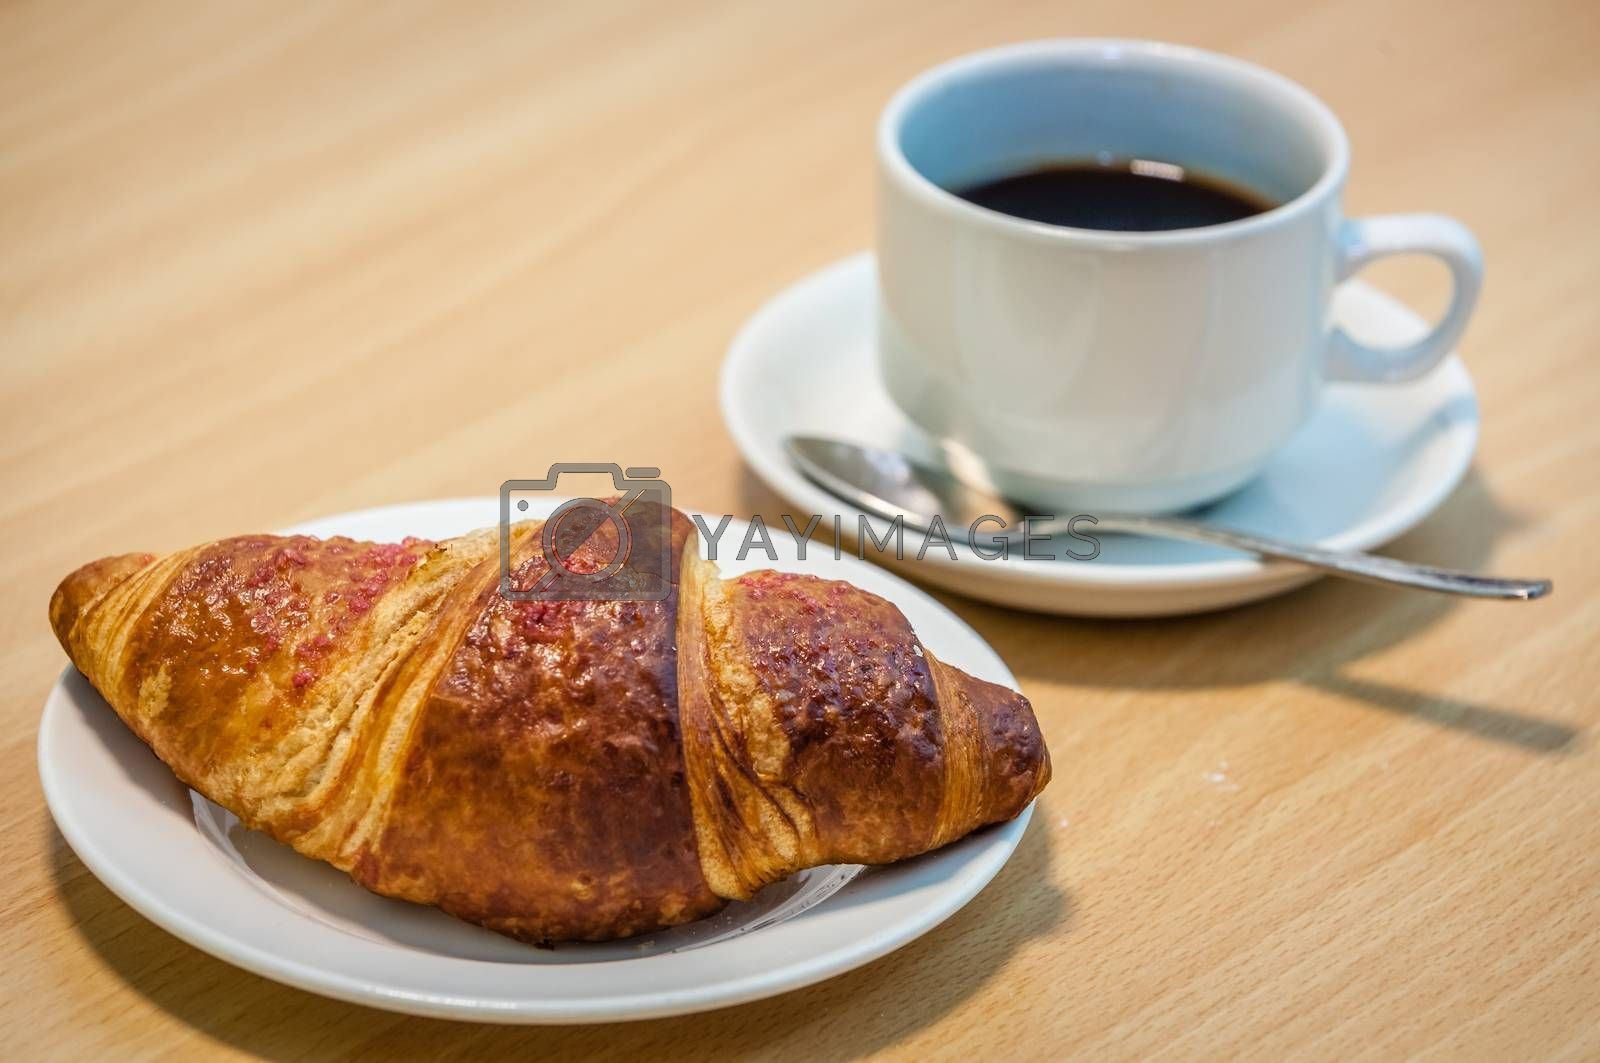 Freshly baked French butter croissant and a cup of black coffee on a table in a restaurant